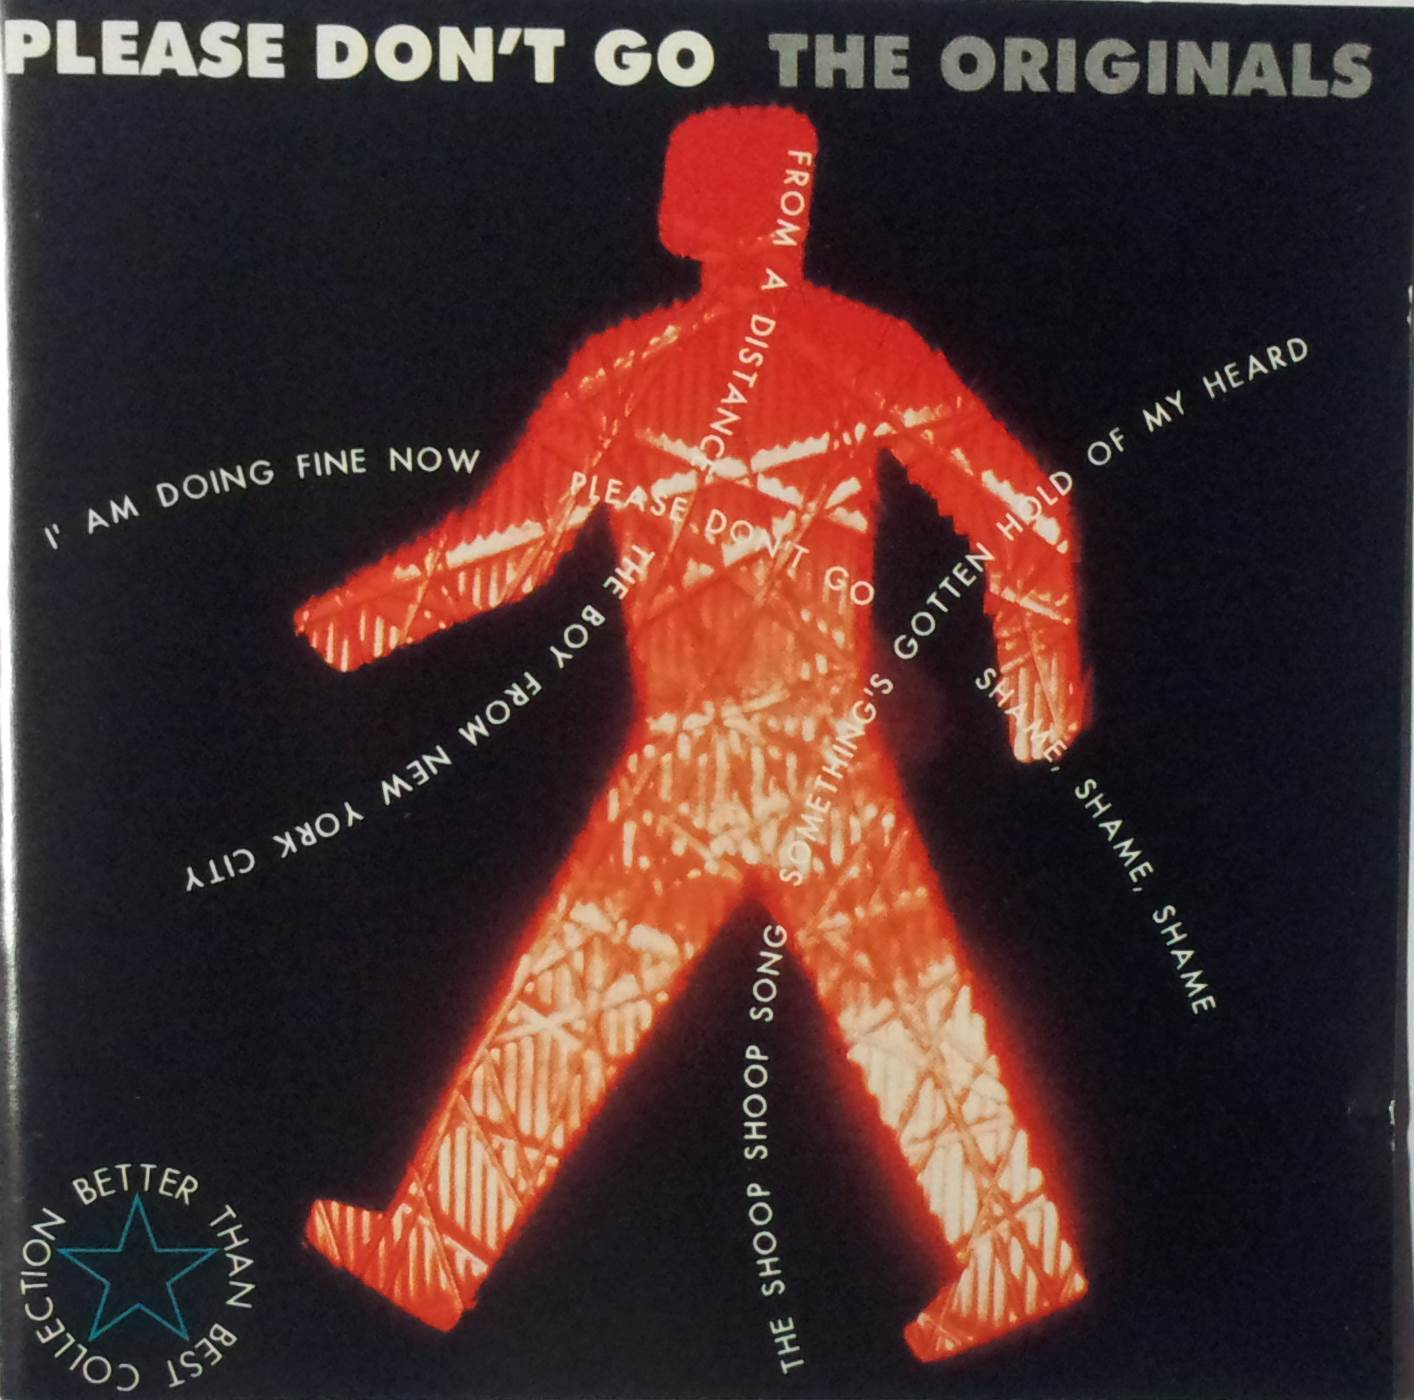 Please don't go - The Originals - Better than best Collection